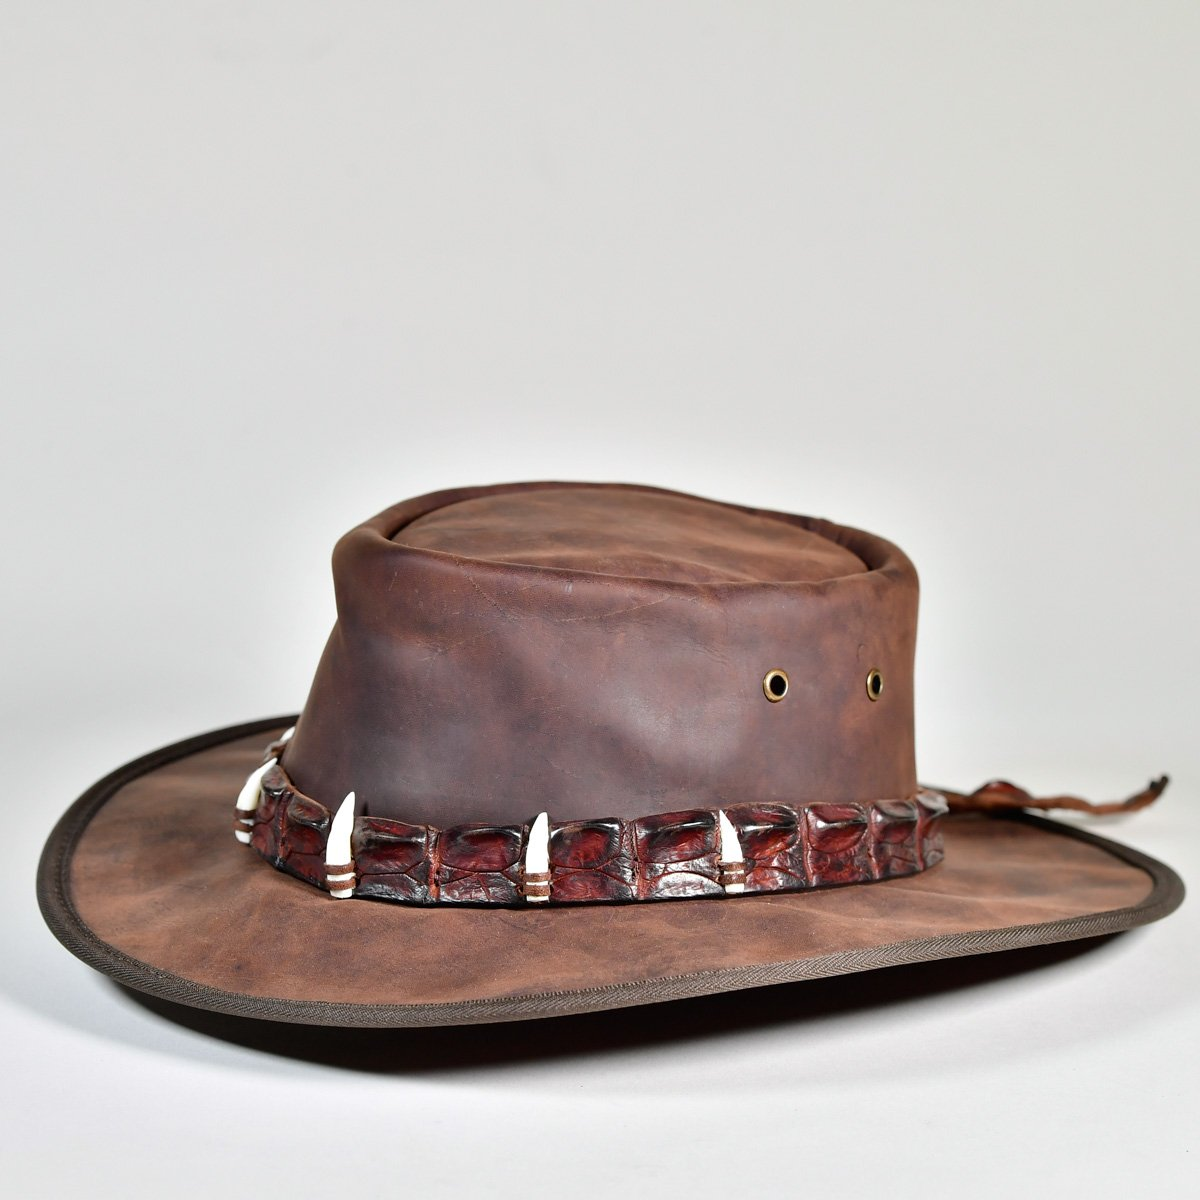 NT Outback Leather Hat with Crocodile Teeth Leather Hatband